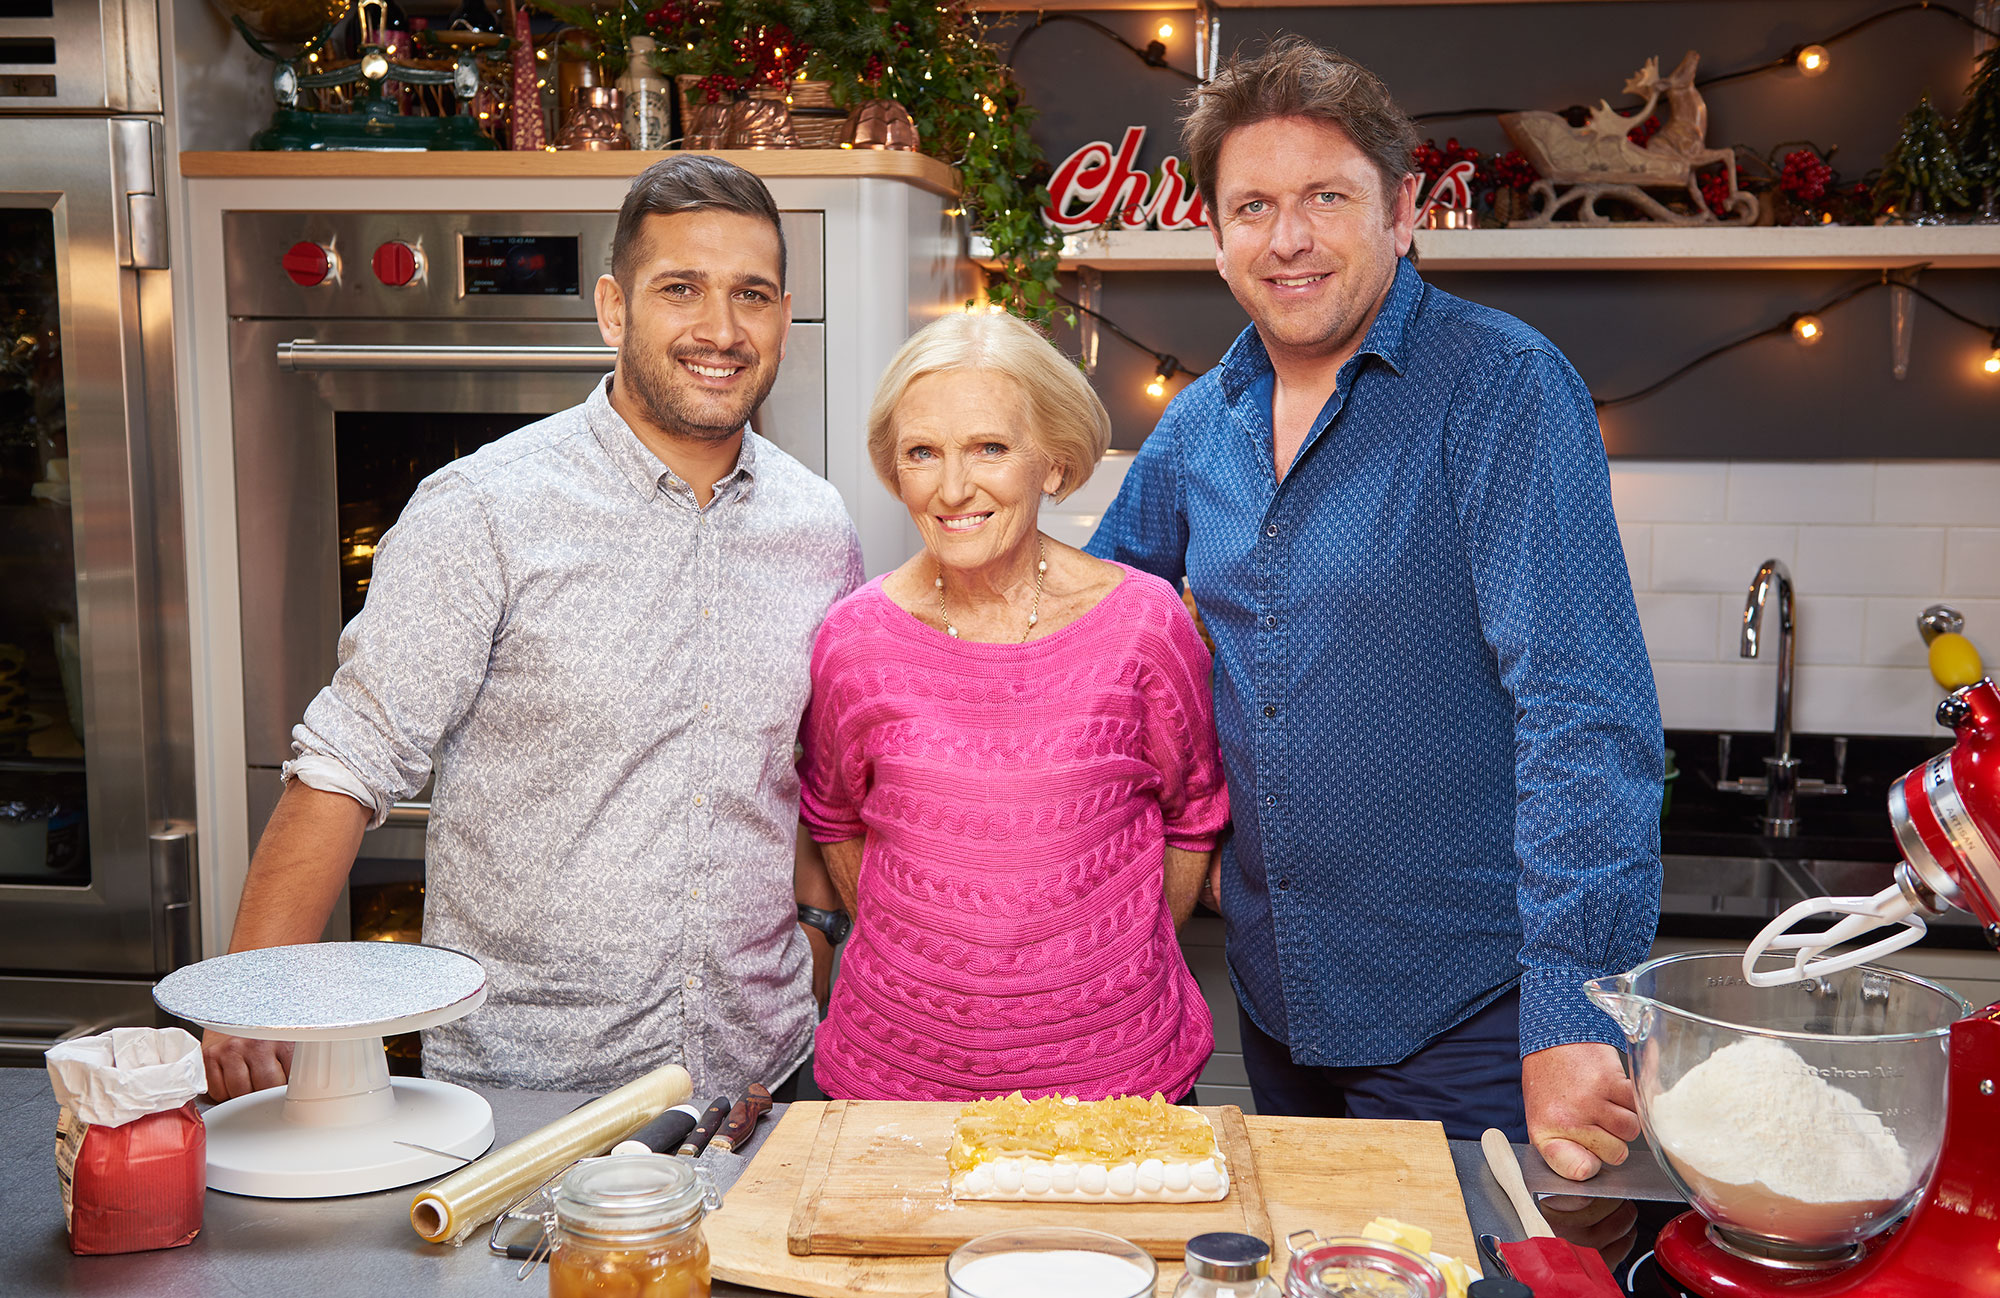 James Martin and Mary Berry's Christmas cooking special sounds like the stuff of TV dreams